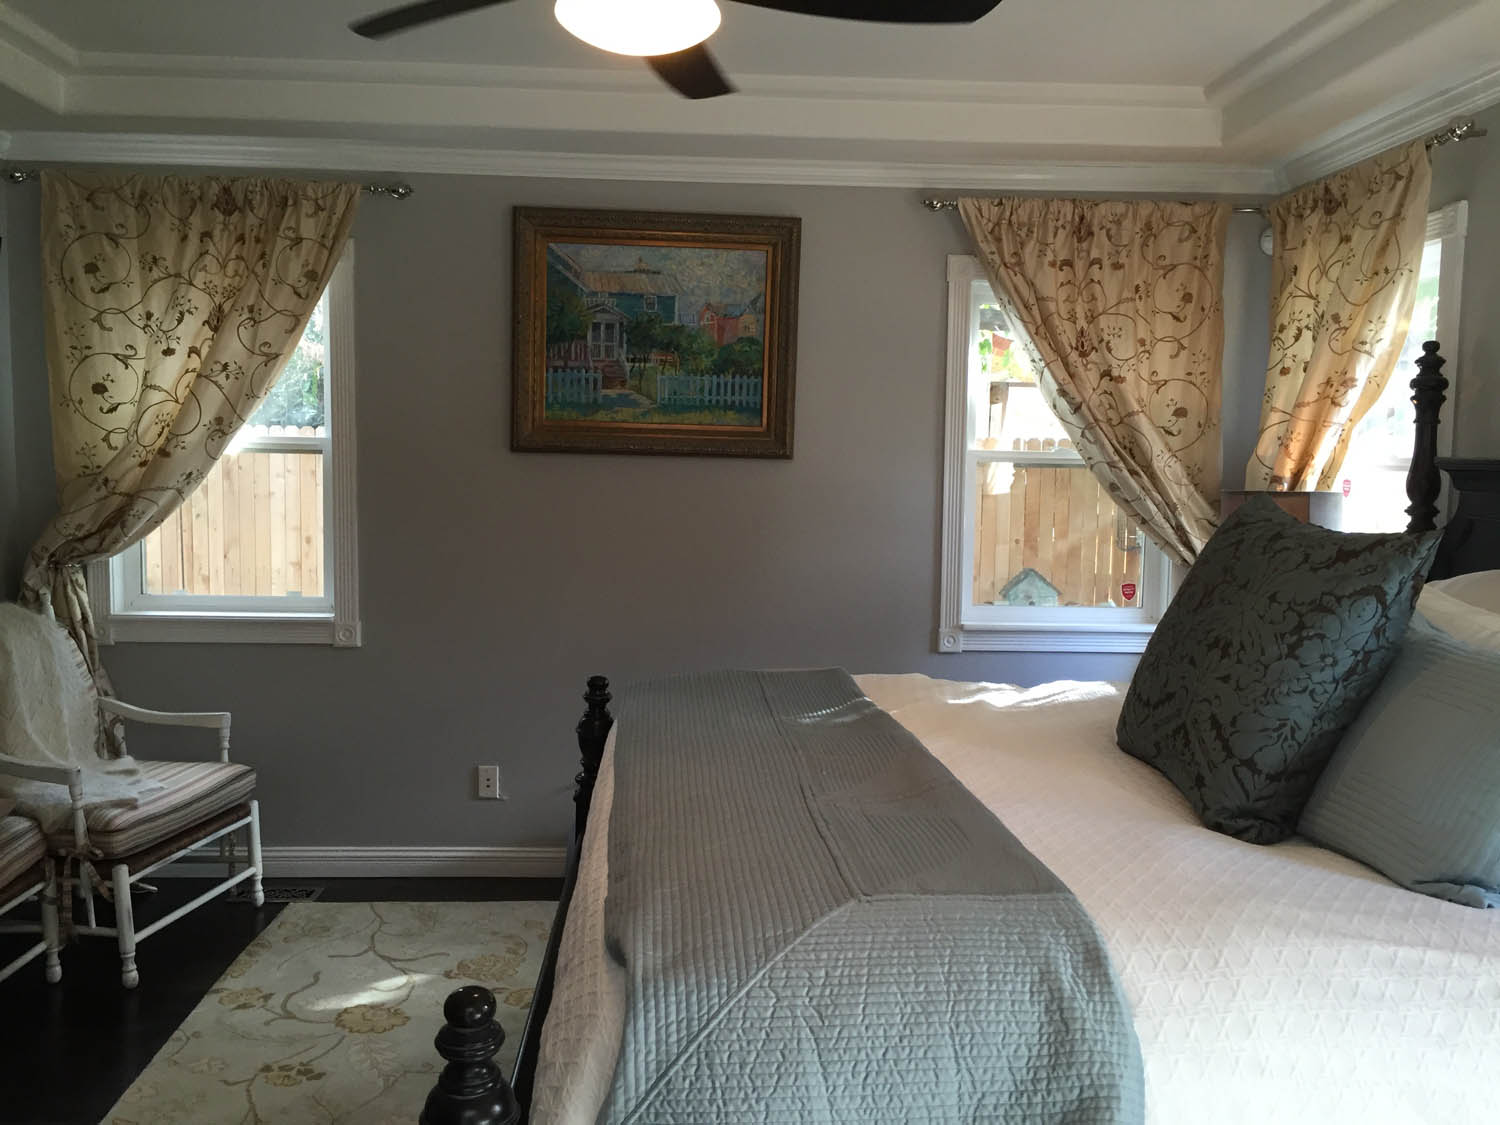 Another view of the master bedroom remodeled with new fan, floors, draperies and paint.